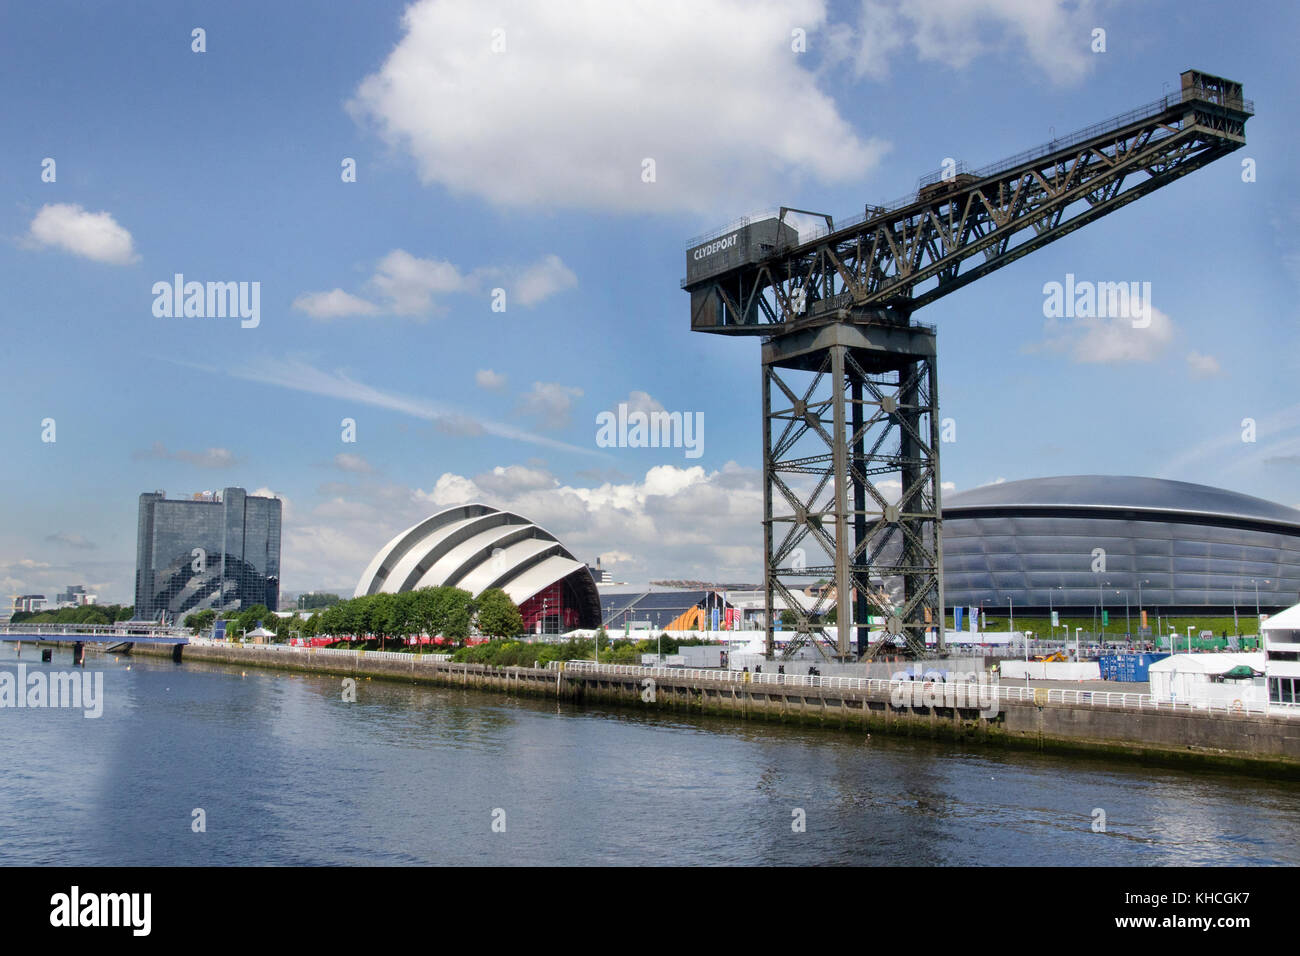 GLASGOW, SCOTLAND- JULY 28 2014: A side view of the Finnieston crane, SEC Armadillo and the Crowne Plaza Glasgow - Stock Image